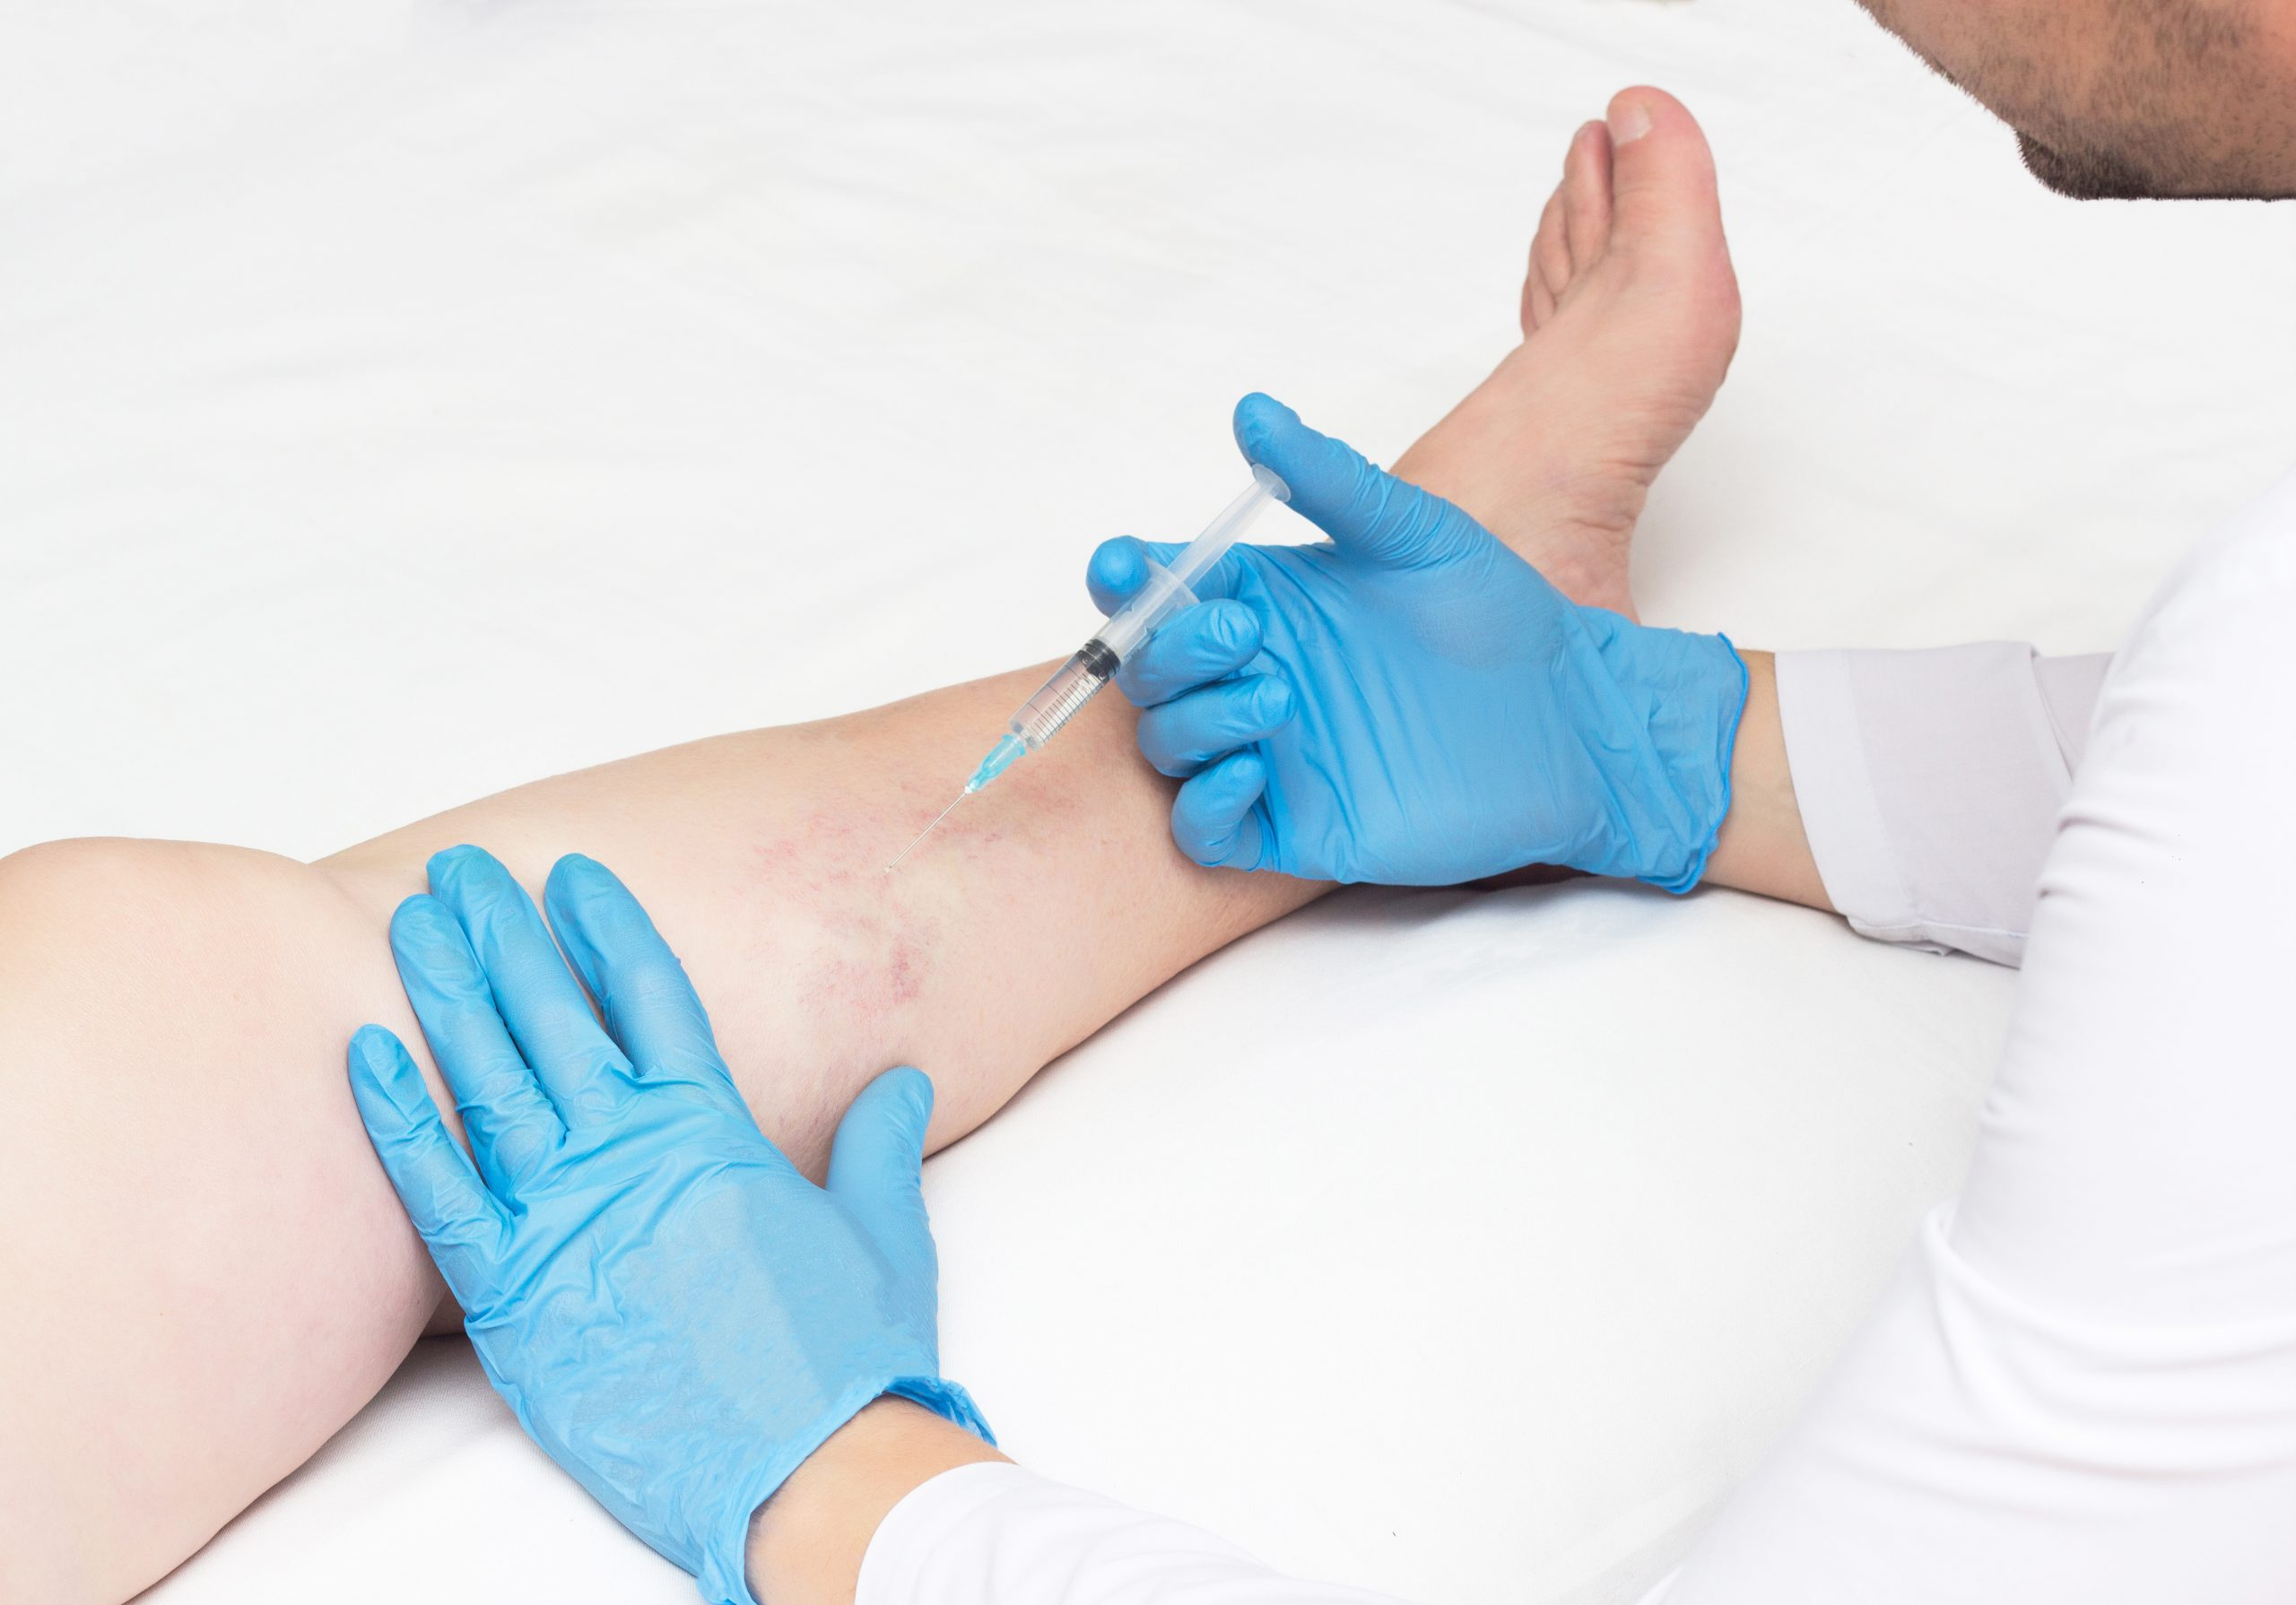 Dr. Calvin Jung is an exceptionally skilled and talented varicose vein doctor near River Oaks. This article describes his varicose vein treatment process and shows you how to request an appointment.